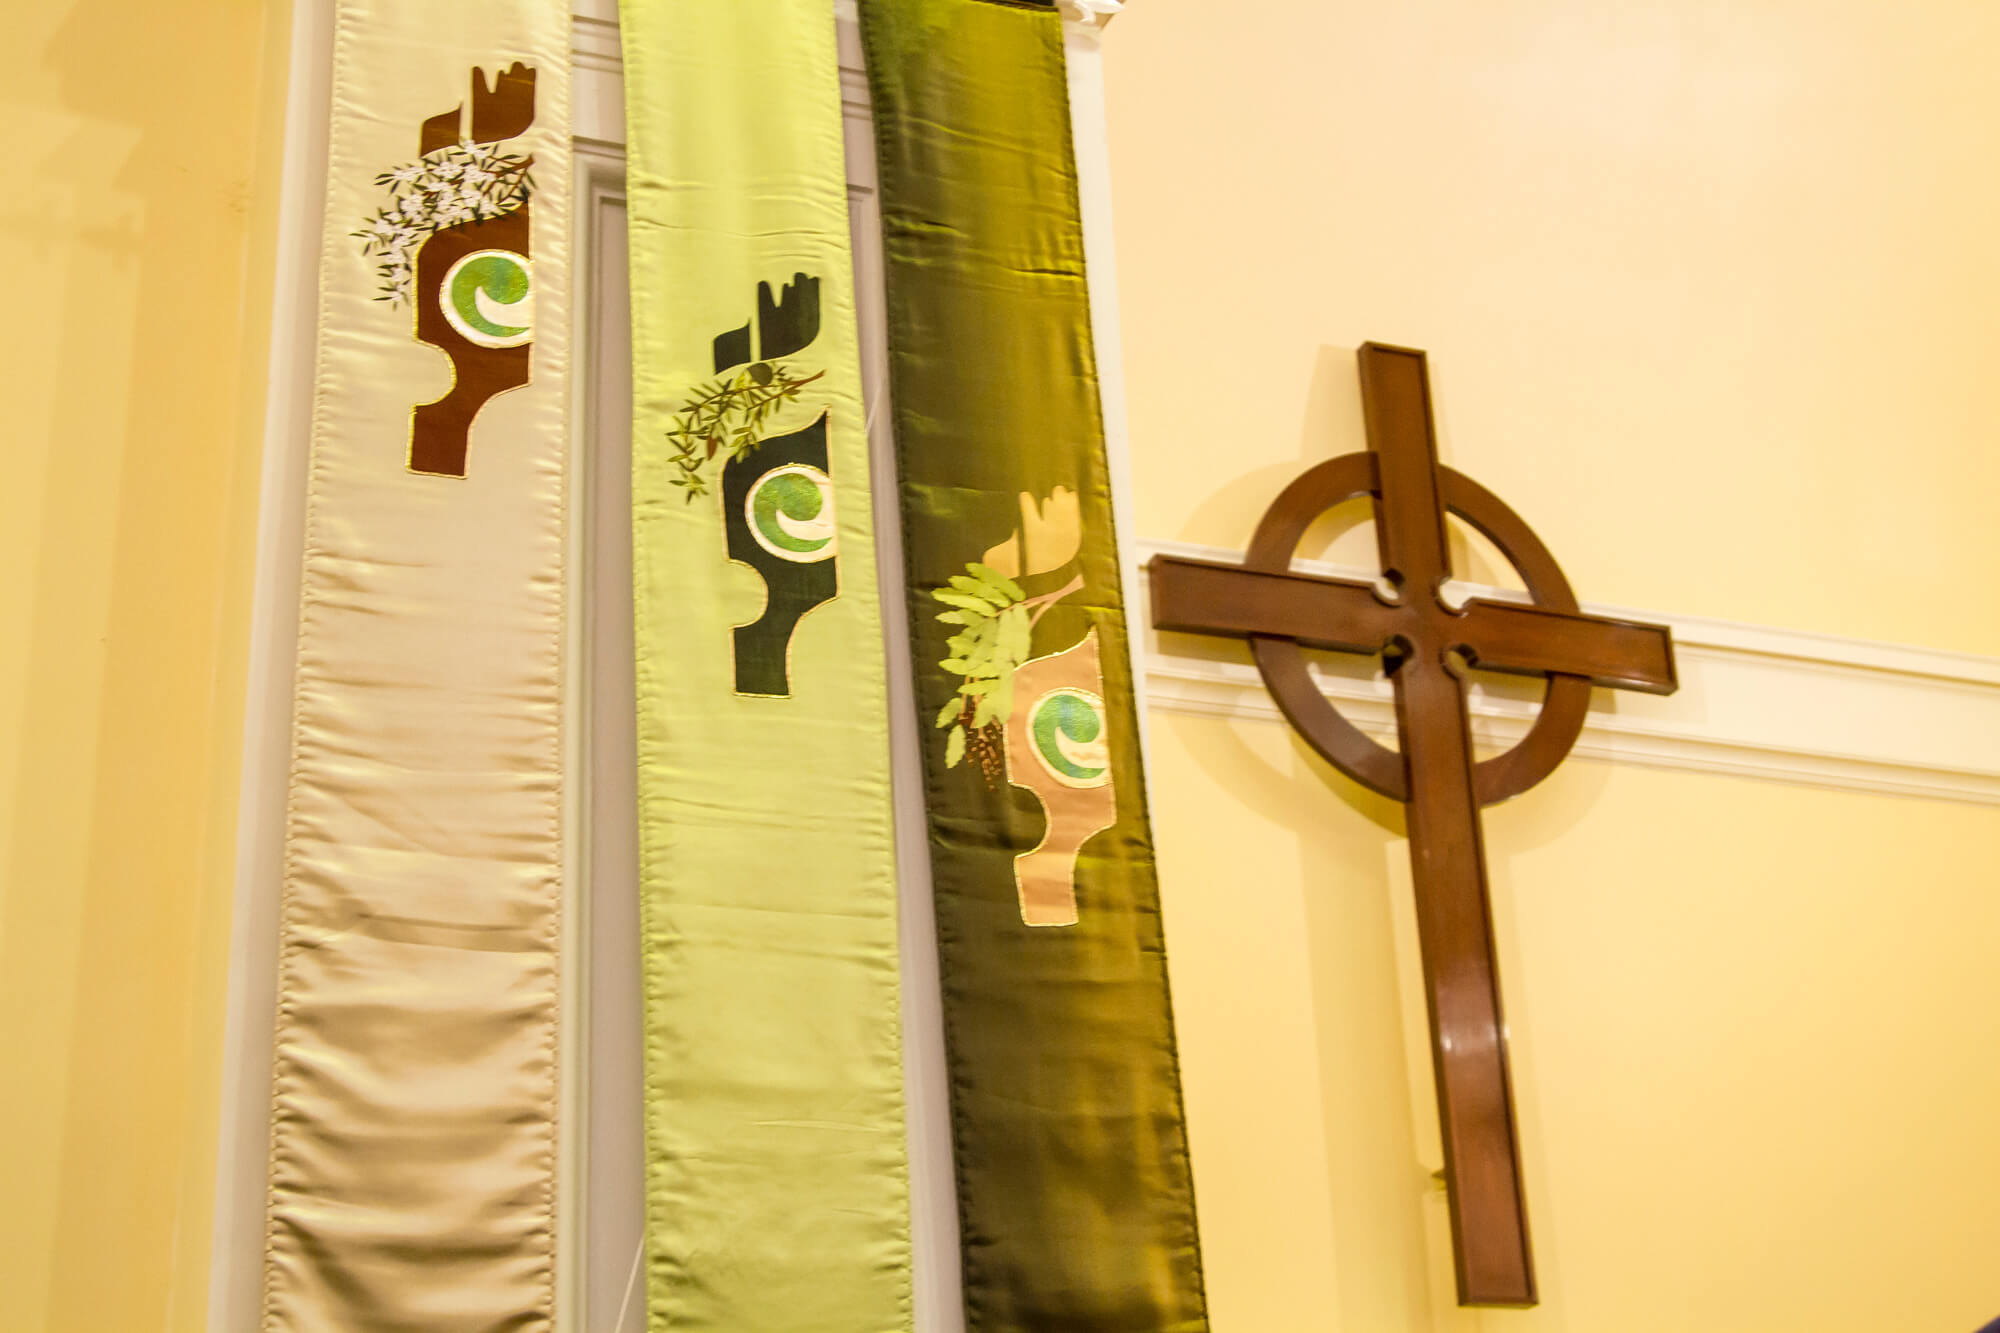 Banners in St Andrew's next to the presbyterian cross